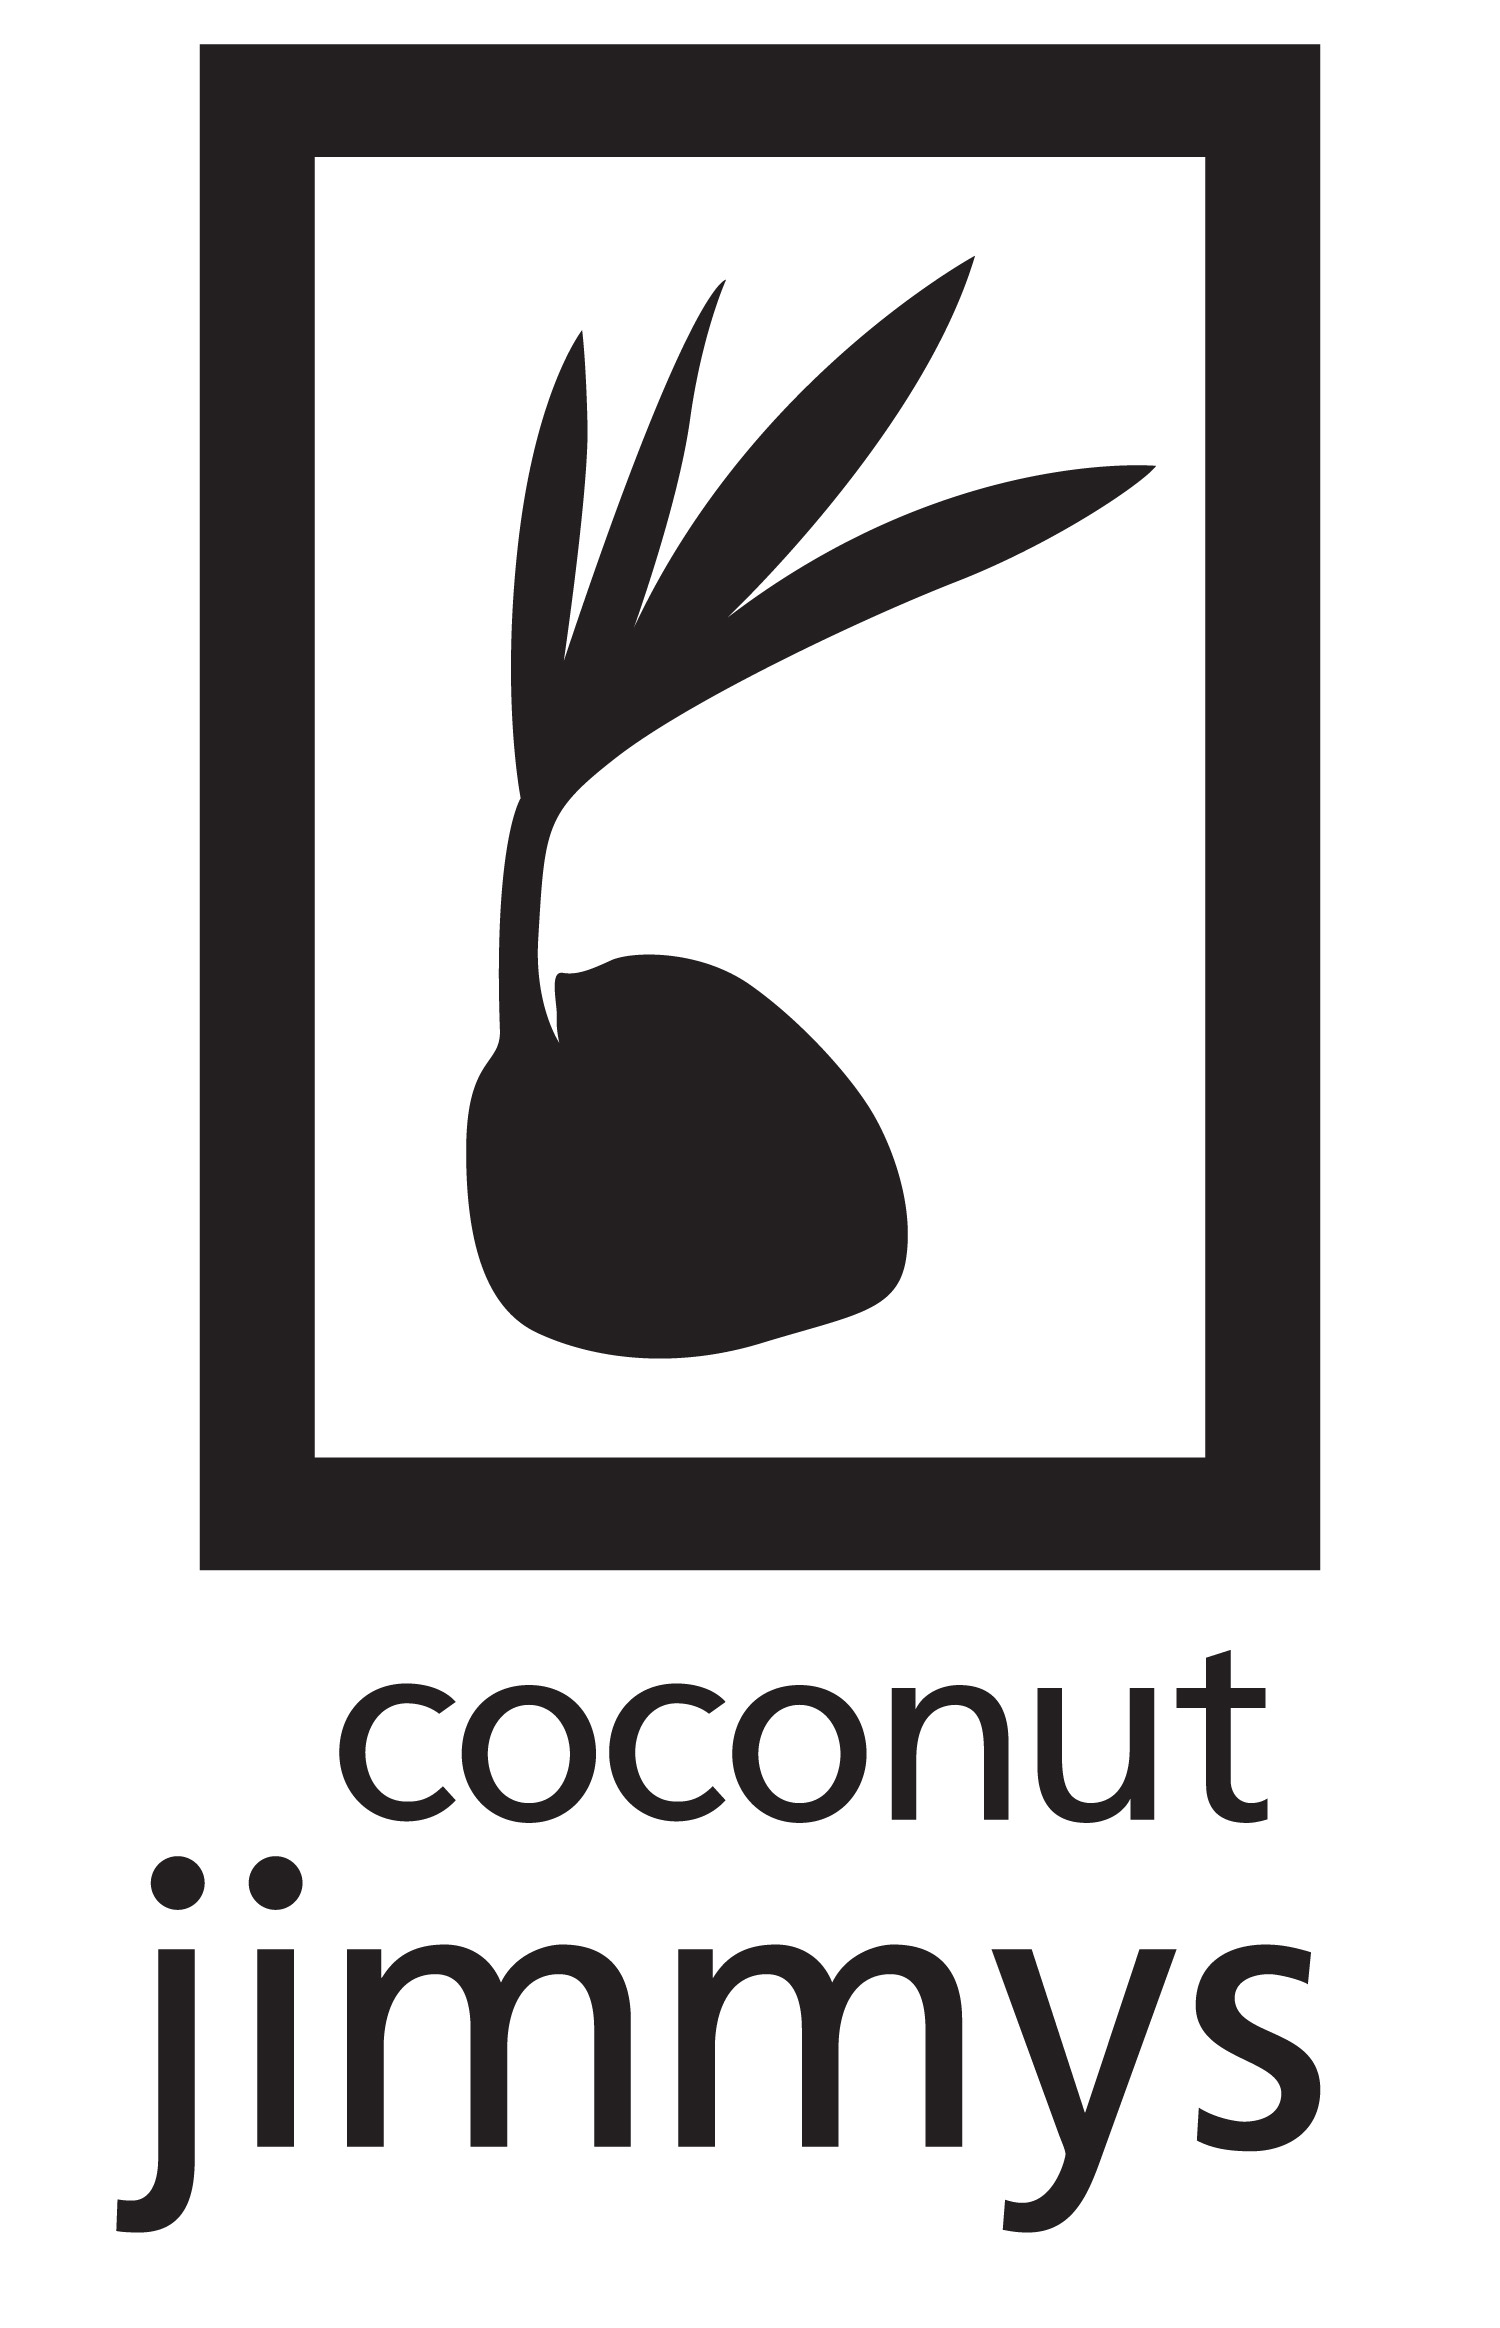 CoconutJimmys_logo_black-on-white_vertical.jpg